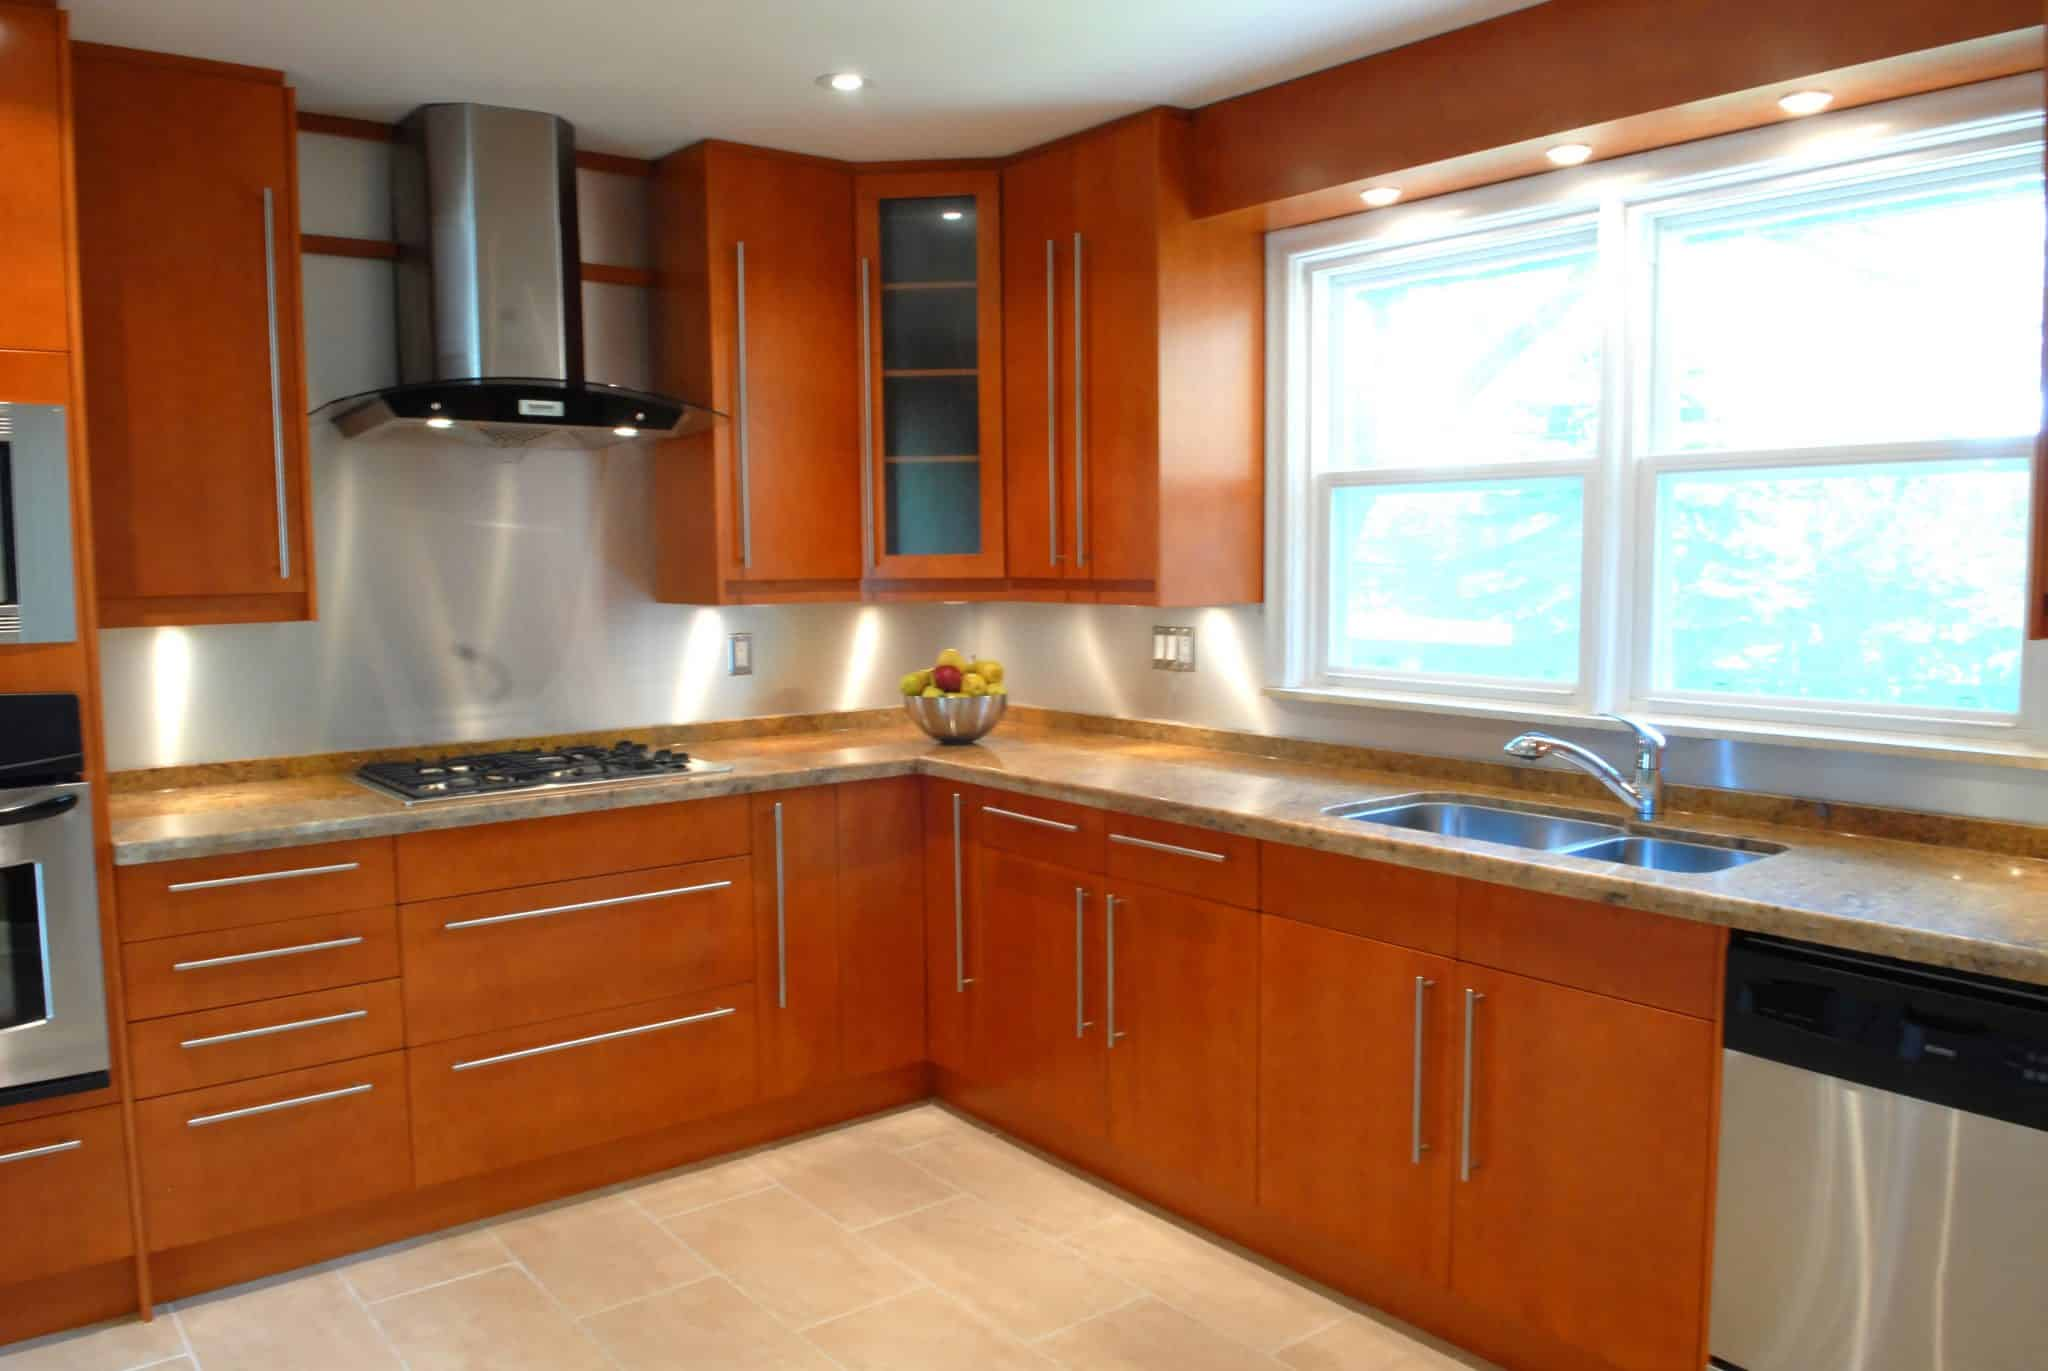 Concord Maple Golden Honey Stain__ac12__Burbank Dr.  Toronto.